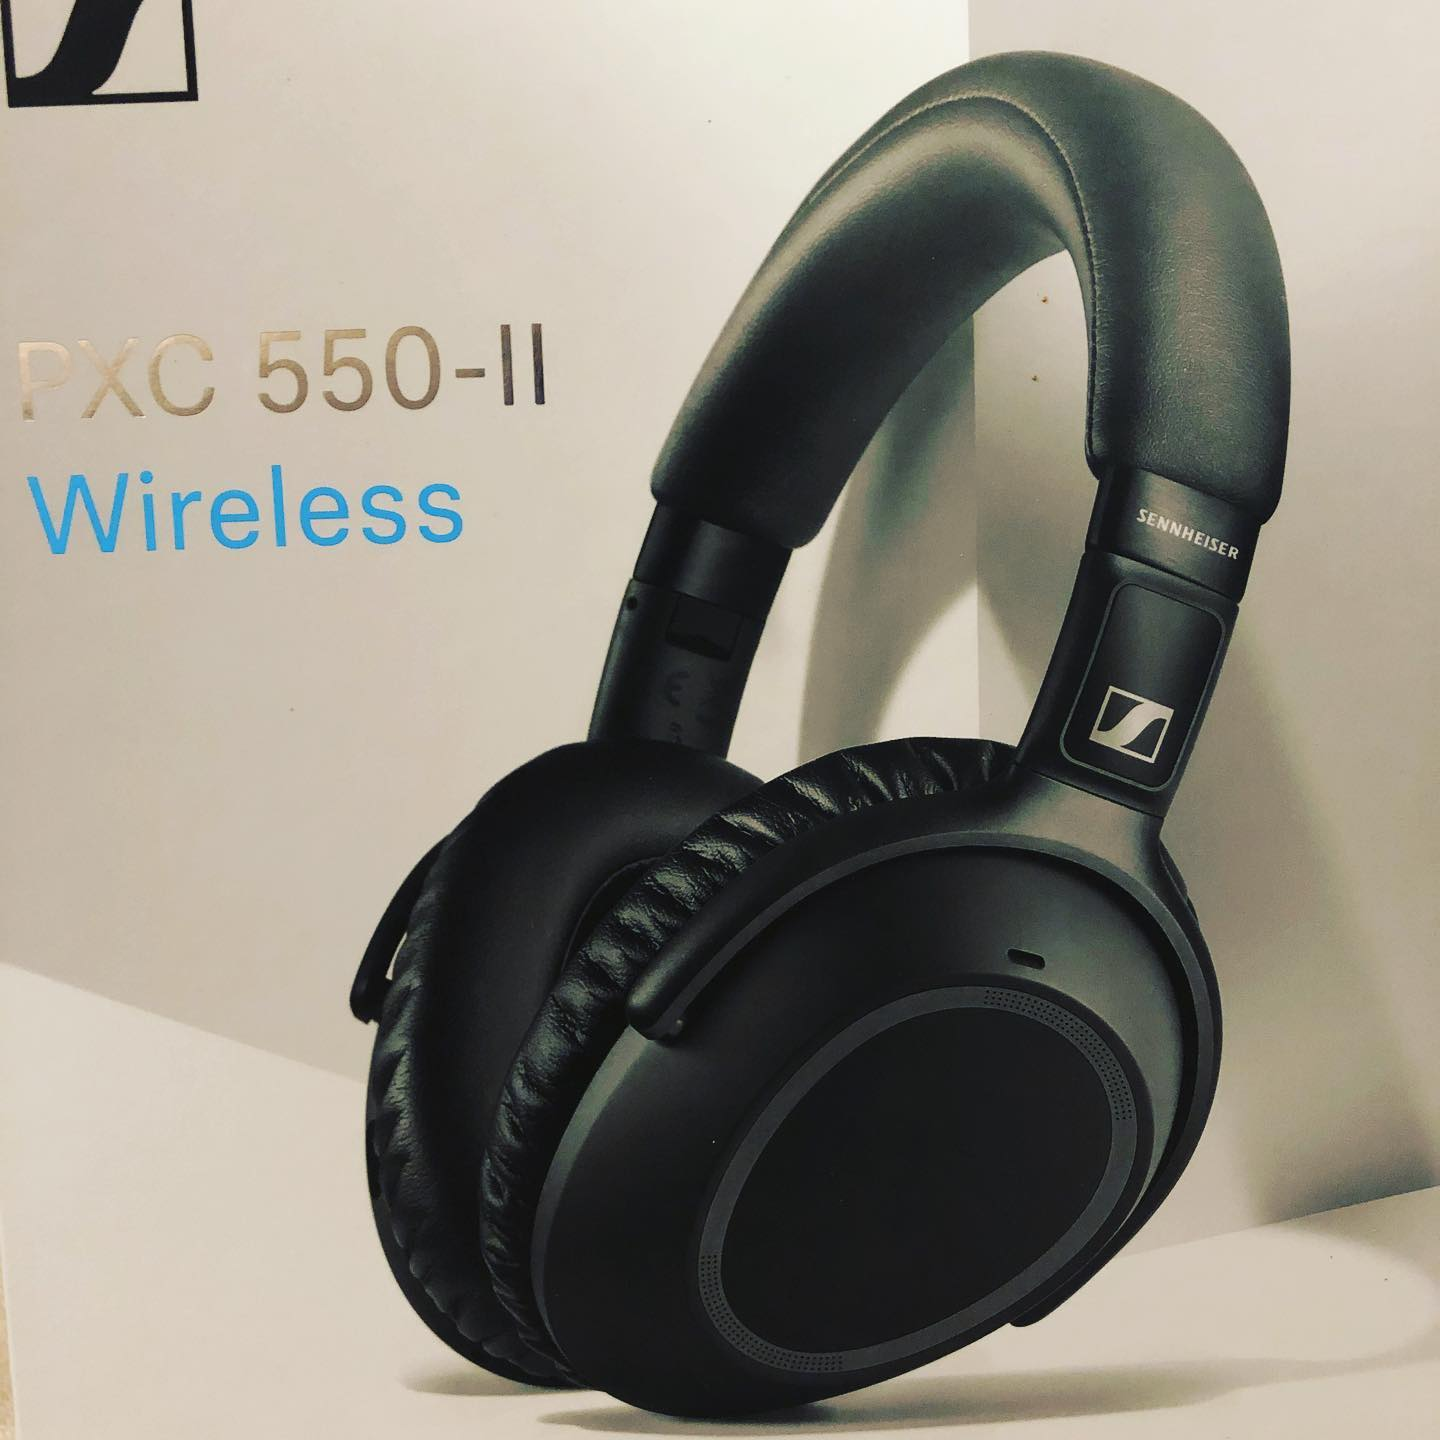 Sennheiser PXC 550 II Wireless – NoiseGard Adaptive Noise Cancelling Bluetooth Headphone with Touch